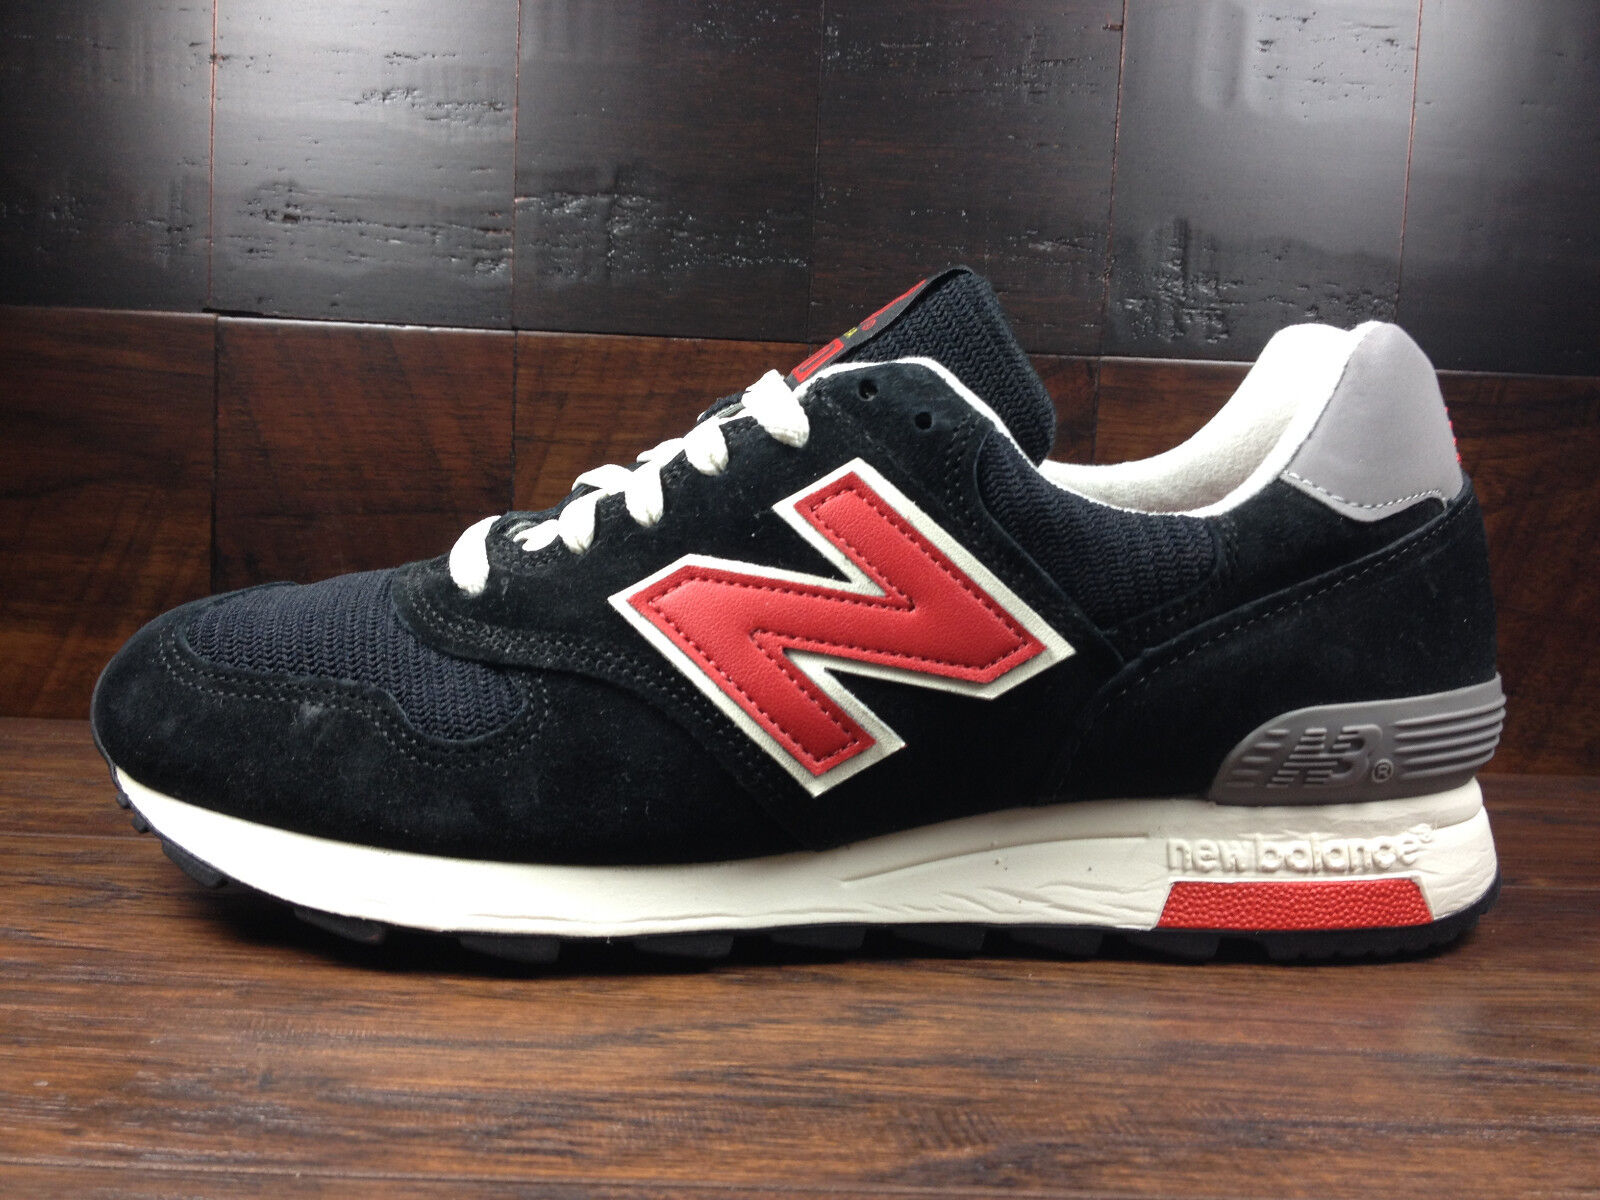 New Balance M1400HB -USA 1400 Connoisseur CATCHER IN THE RYE (Black / Red) MENS